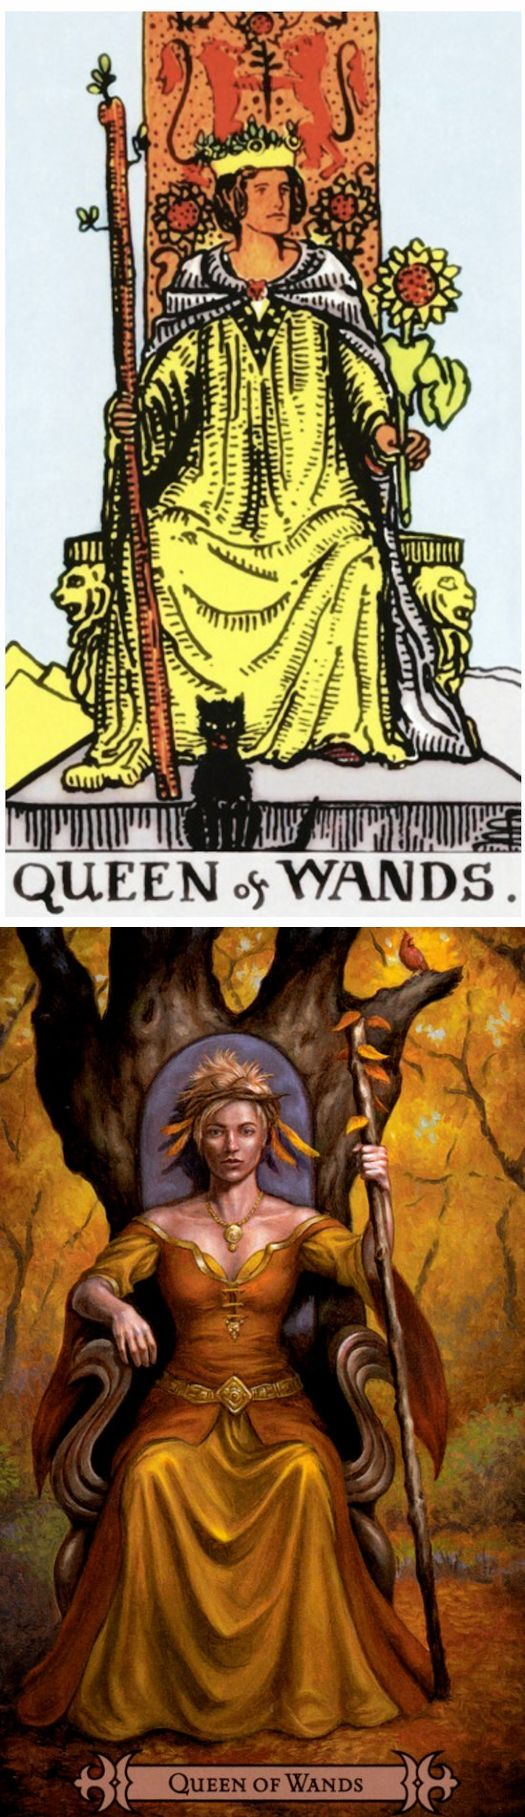 Queen of Wands: determined and jealous (reverse). Rider Tarot deck and Spellcasters Tarot deck: free physic reading, lotus tarot free online reading vs daily tarot free online. The best tarot art and spelljammer. #hierophant #paganism #spells